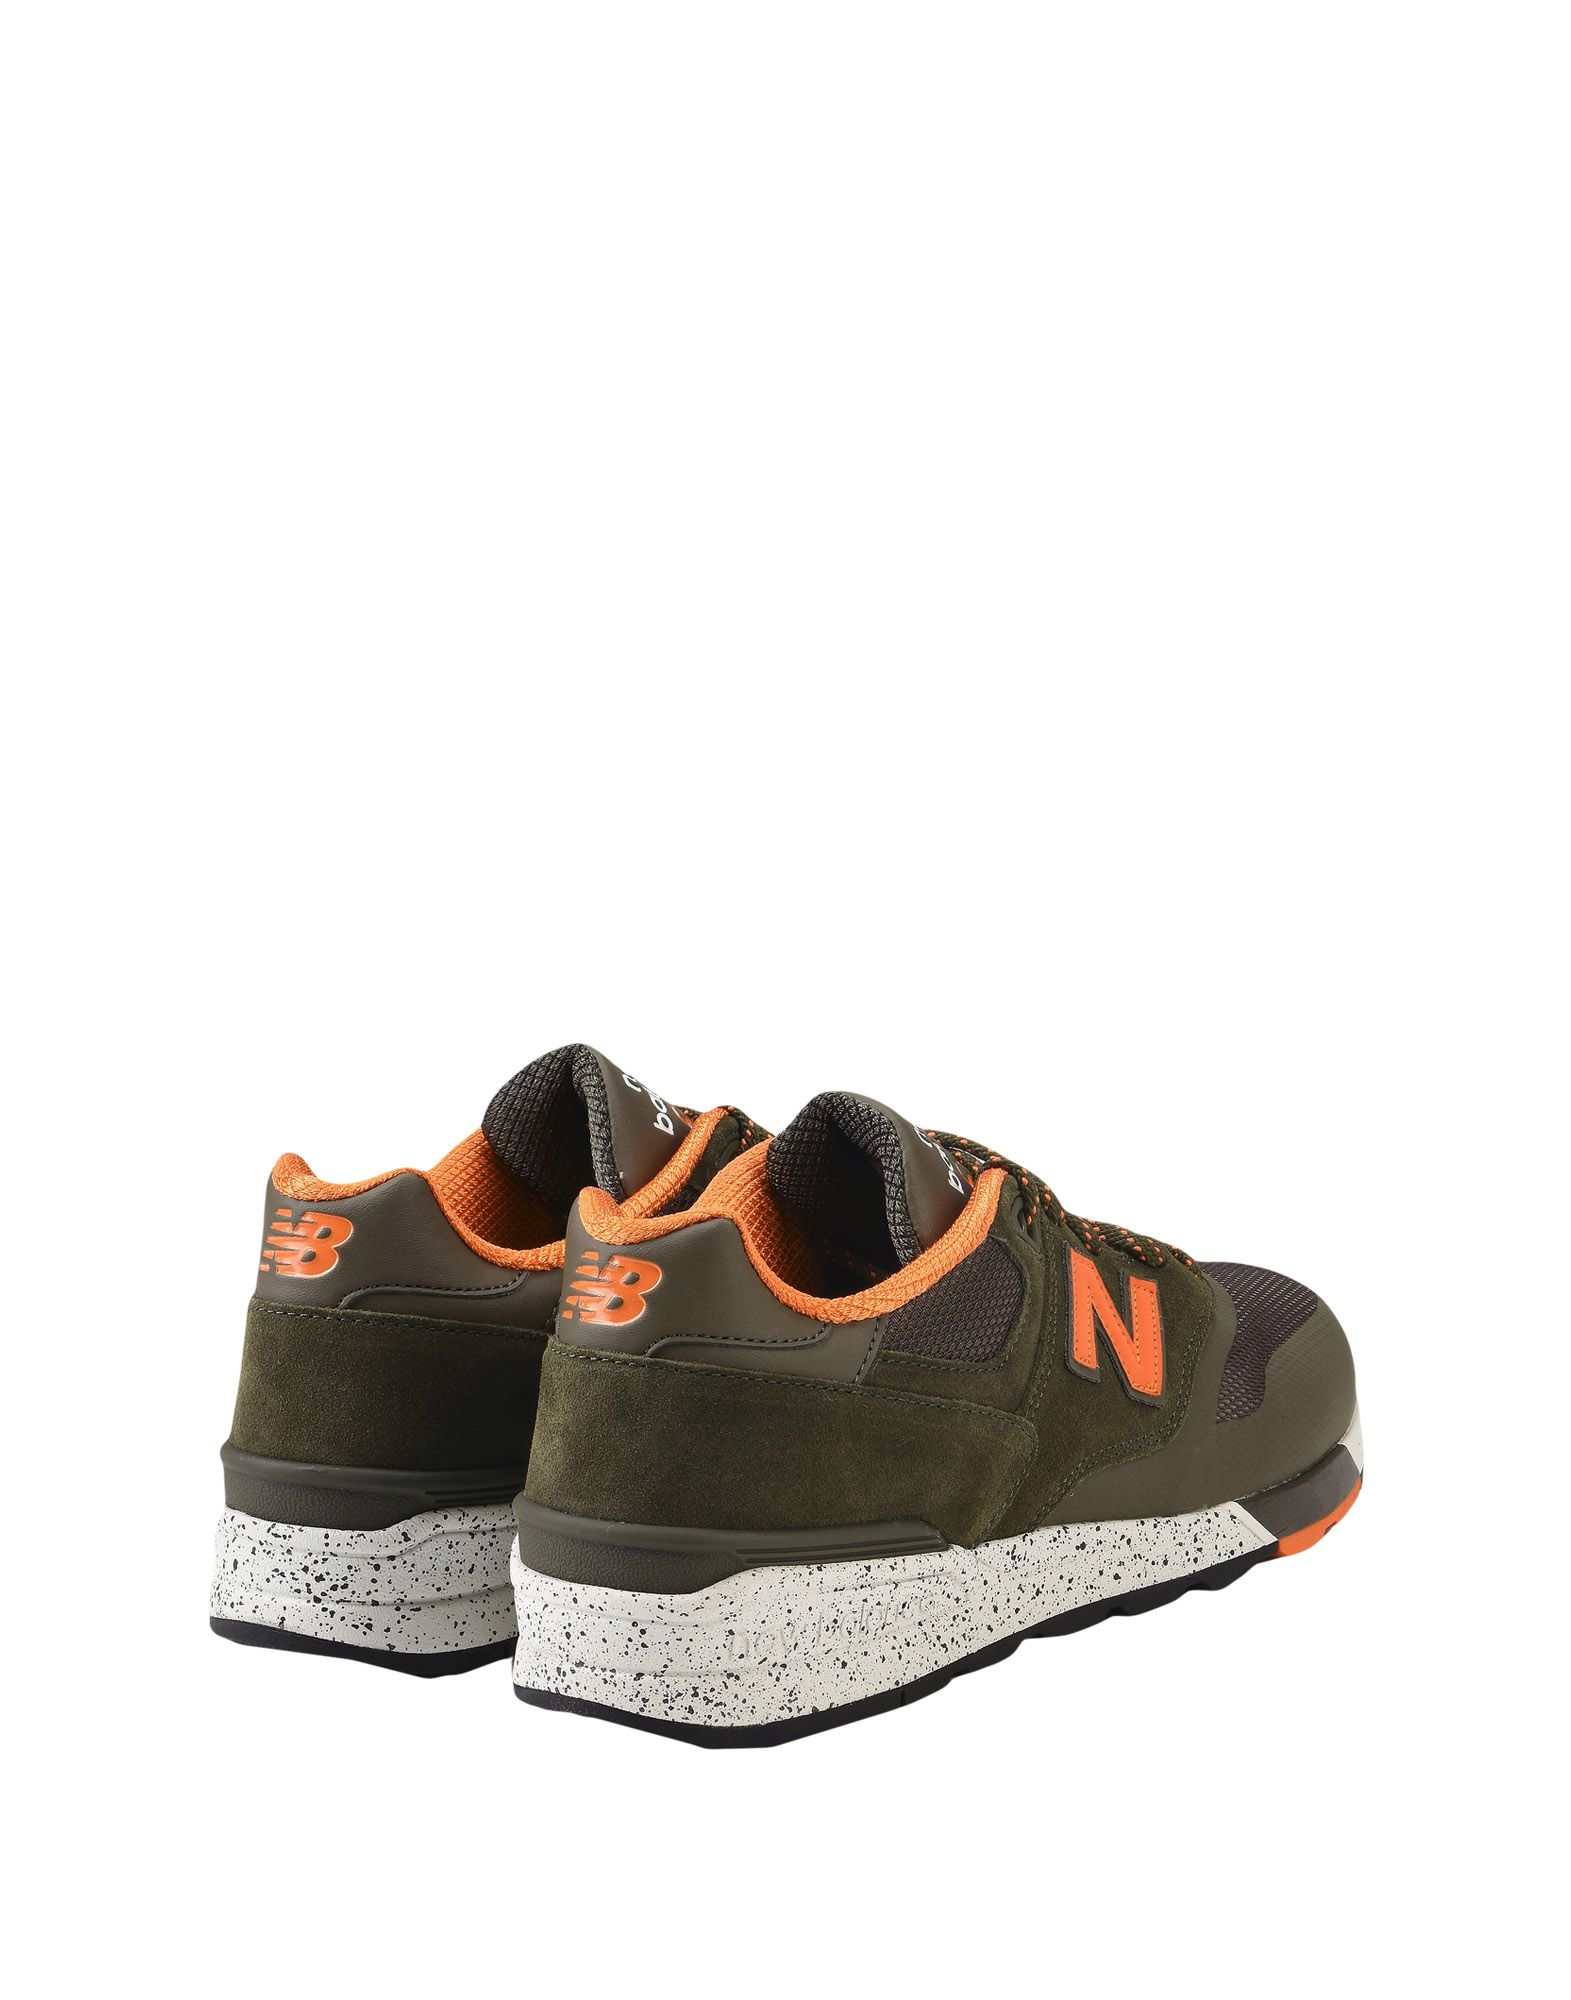 Sneakers New Balance 597 Outdoor Pack - Homme - Sneakers New Balance sur